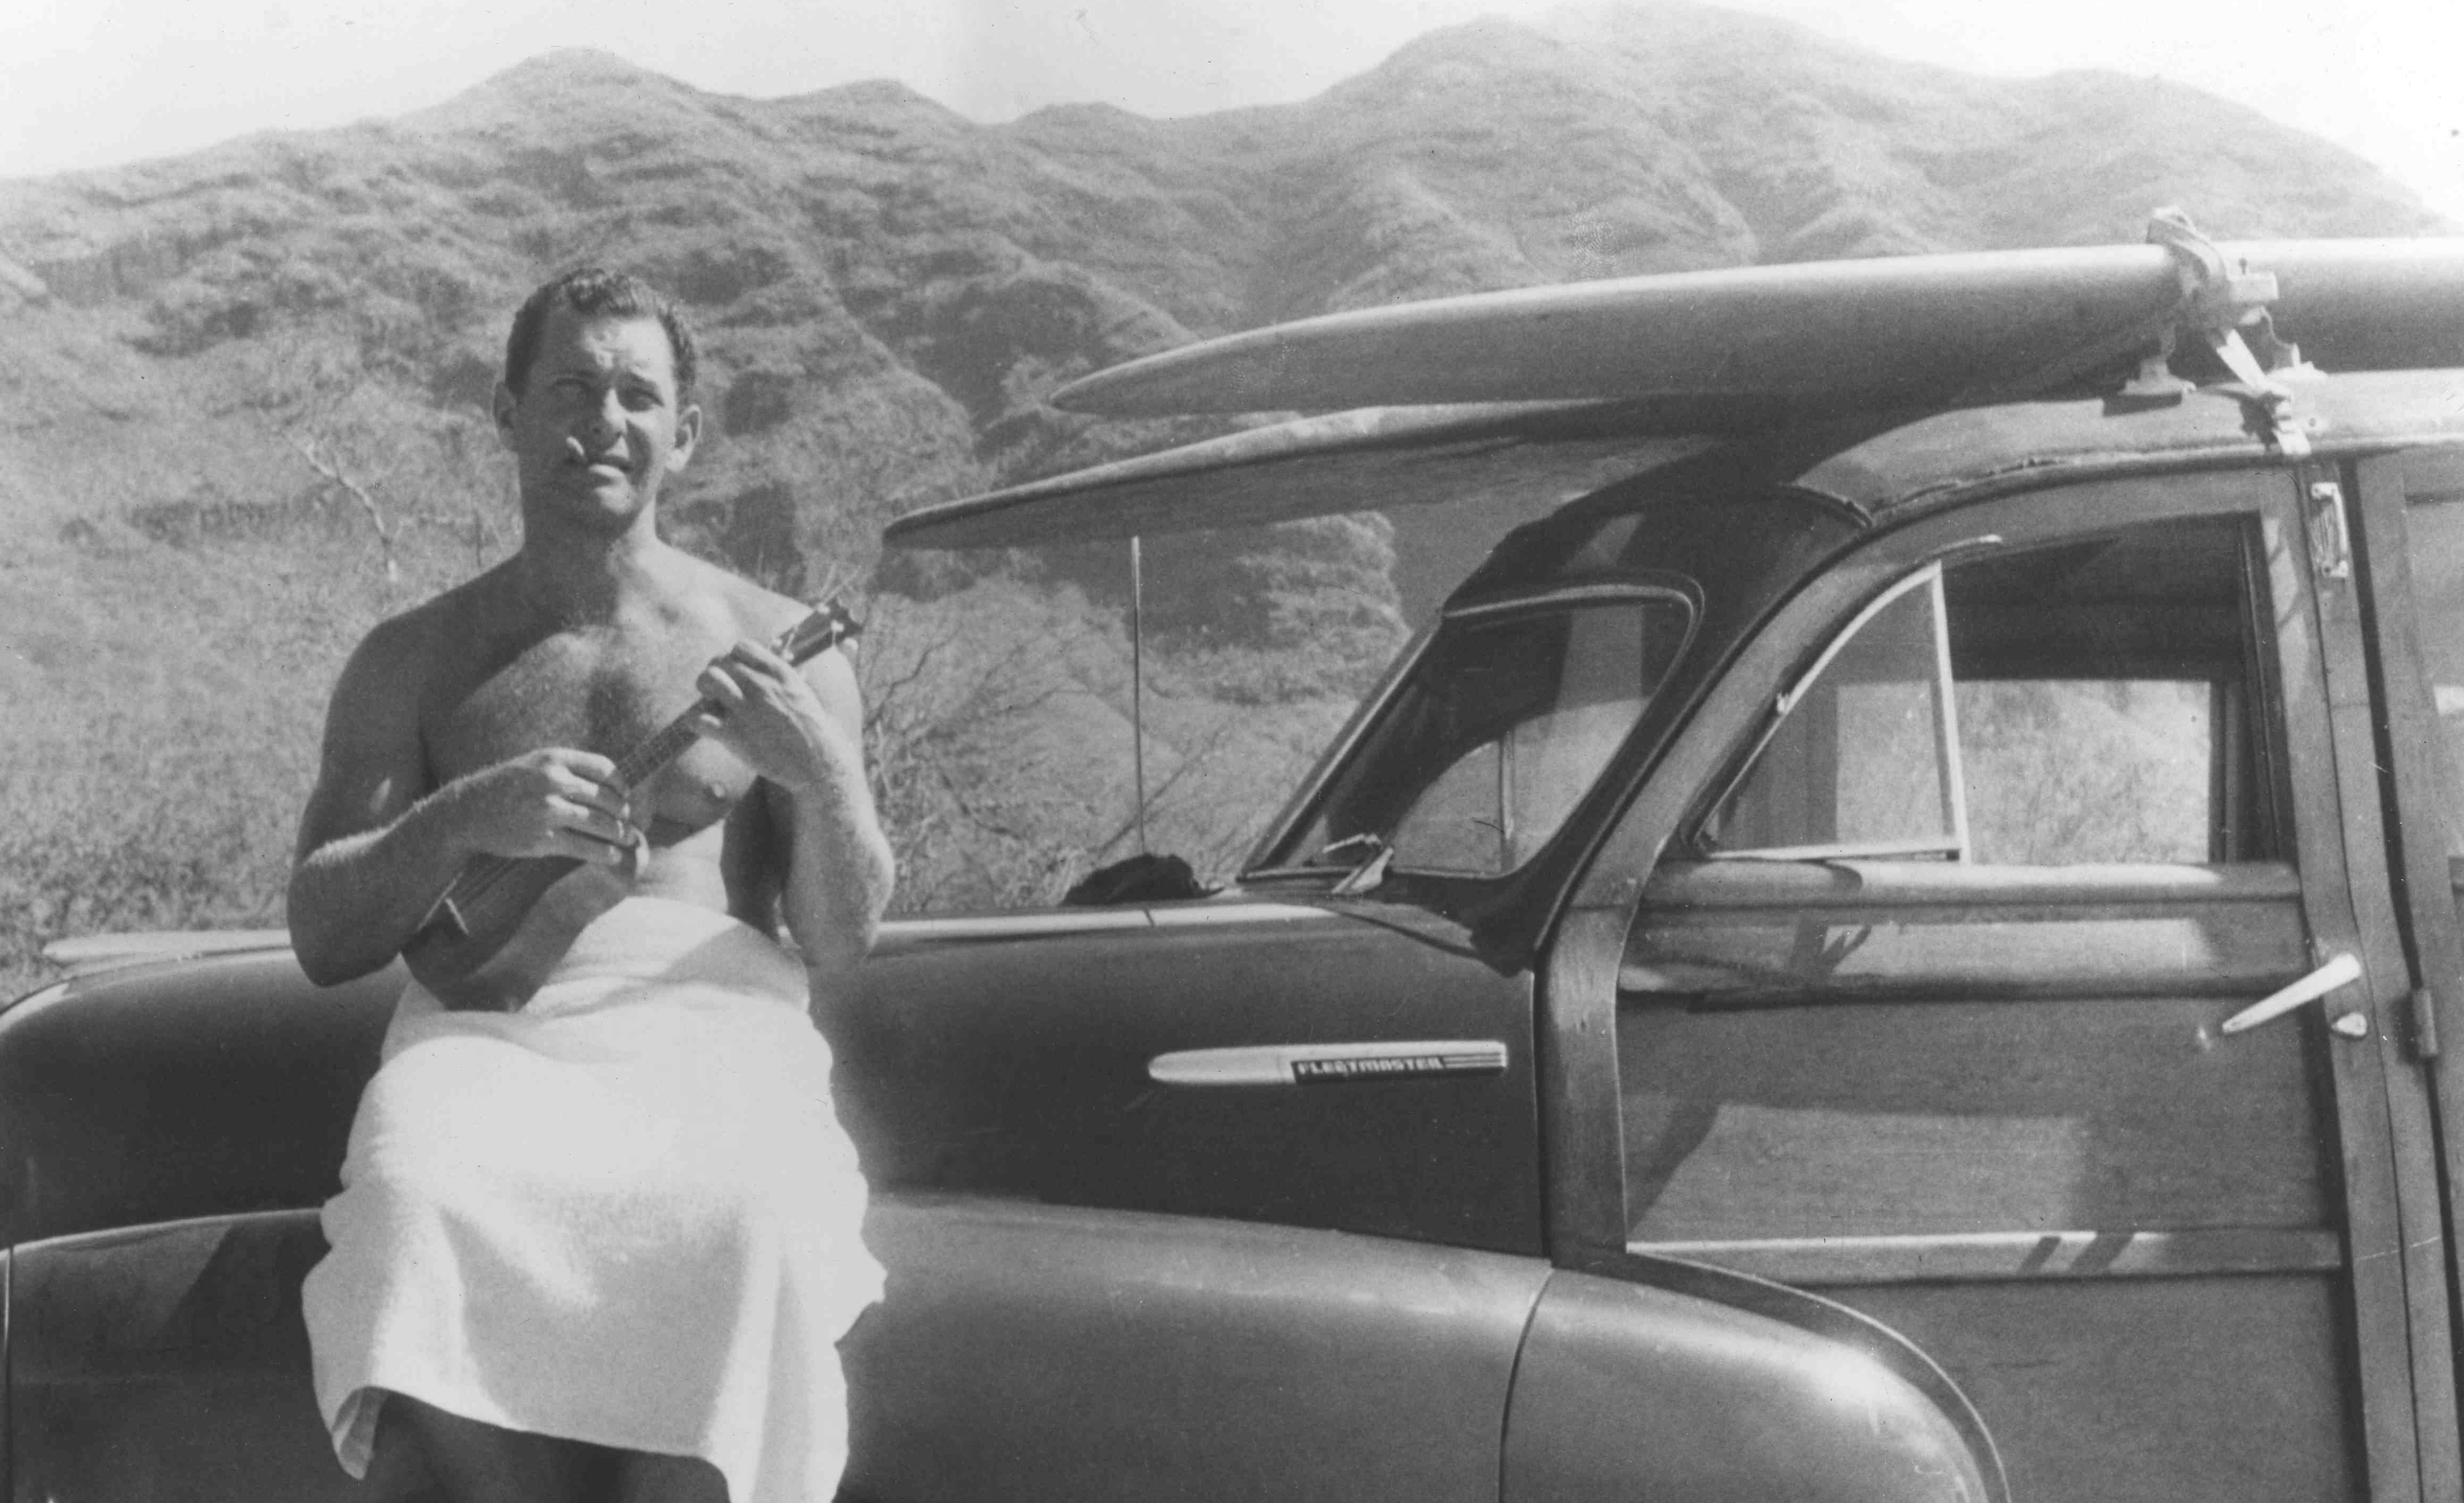 Born on the Road: Doc Paskowitz and the Rise of Surfing #VanLife